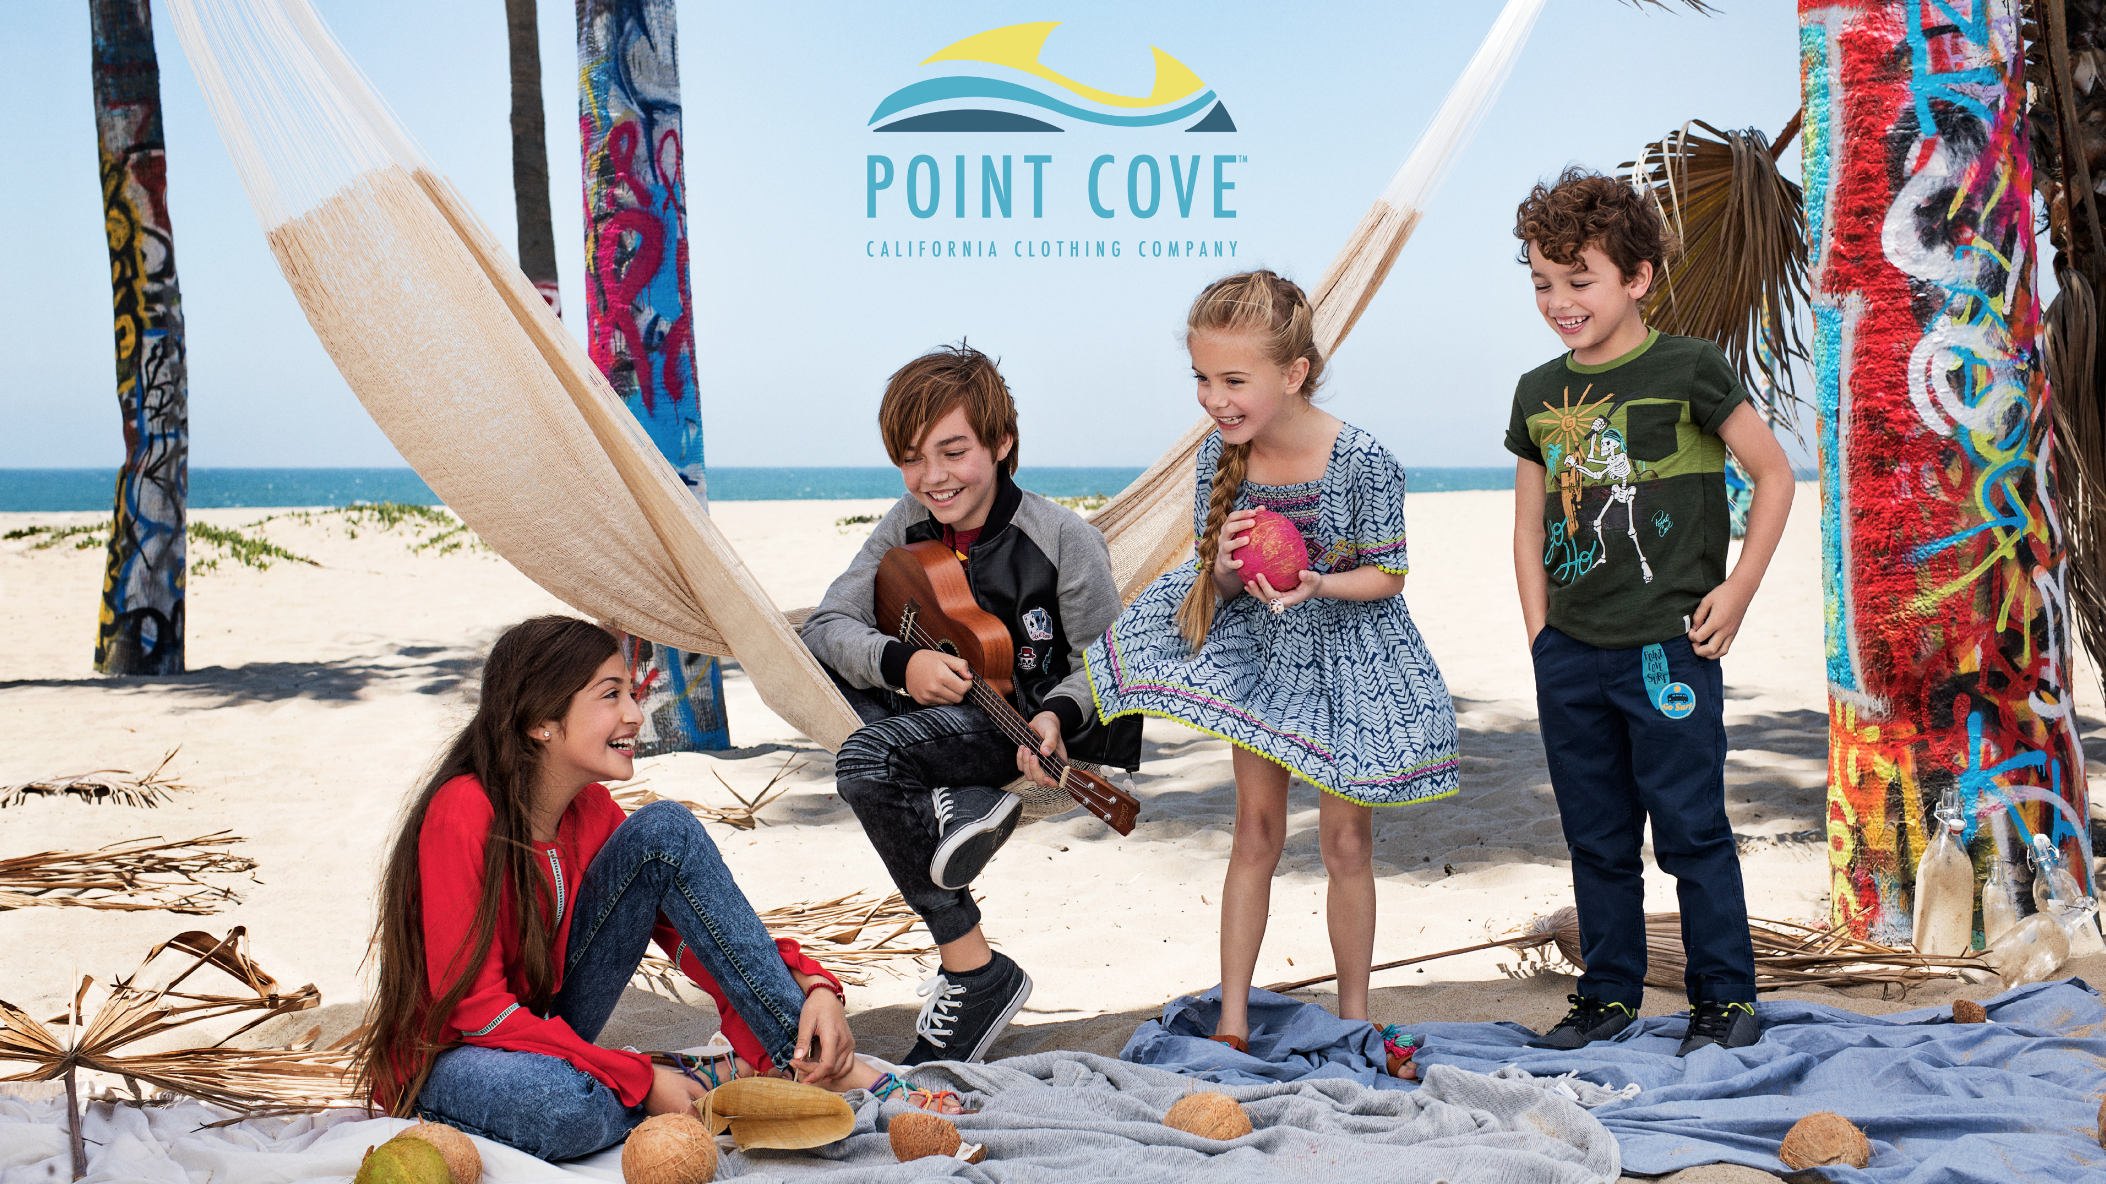 Point Cove